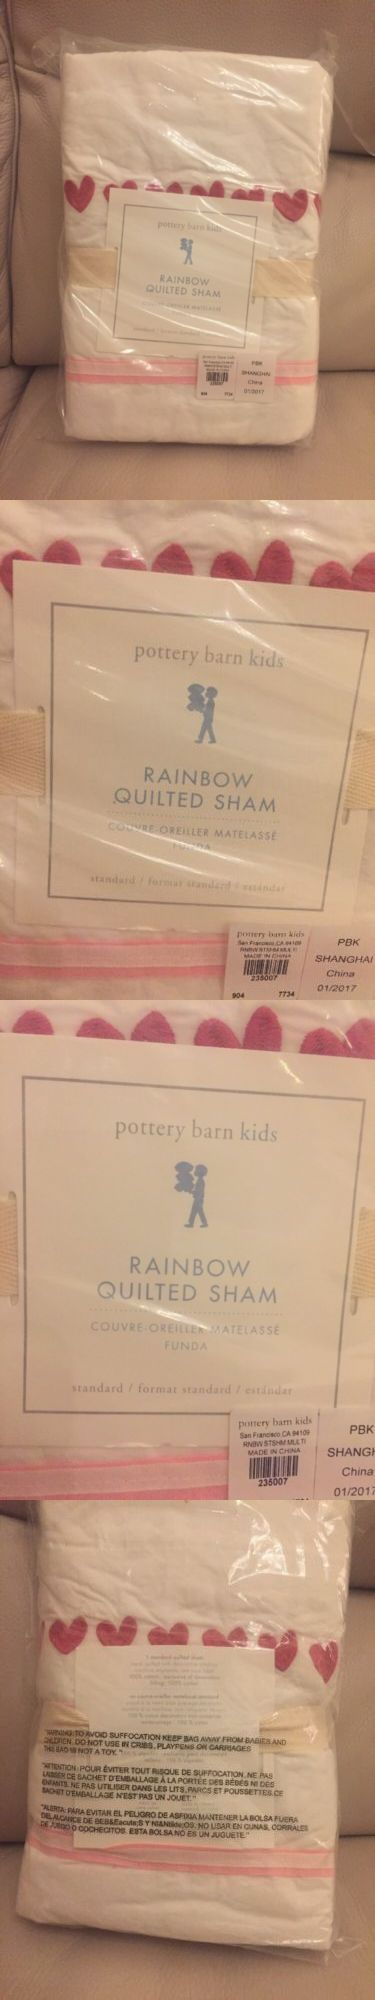 Pillow Shams 66729: 1 Pottery Barn Kids Rainbow Quilted Standard Sham Nwt Pink Hearts! Nwt -> BUY IT NOW ONLY: $39.95 on eBay!